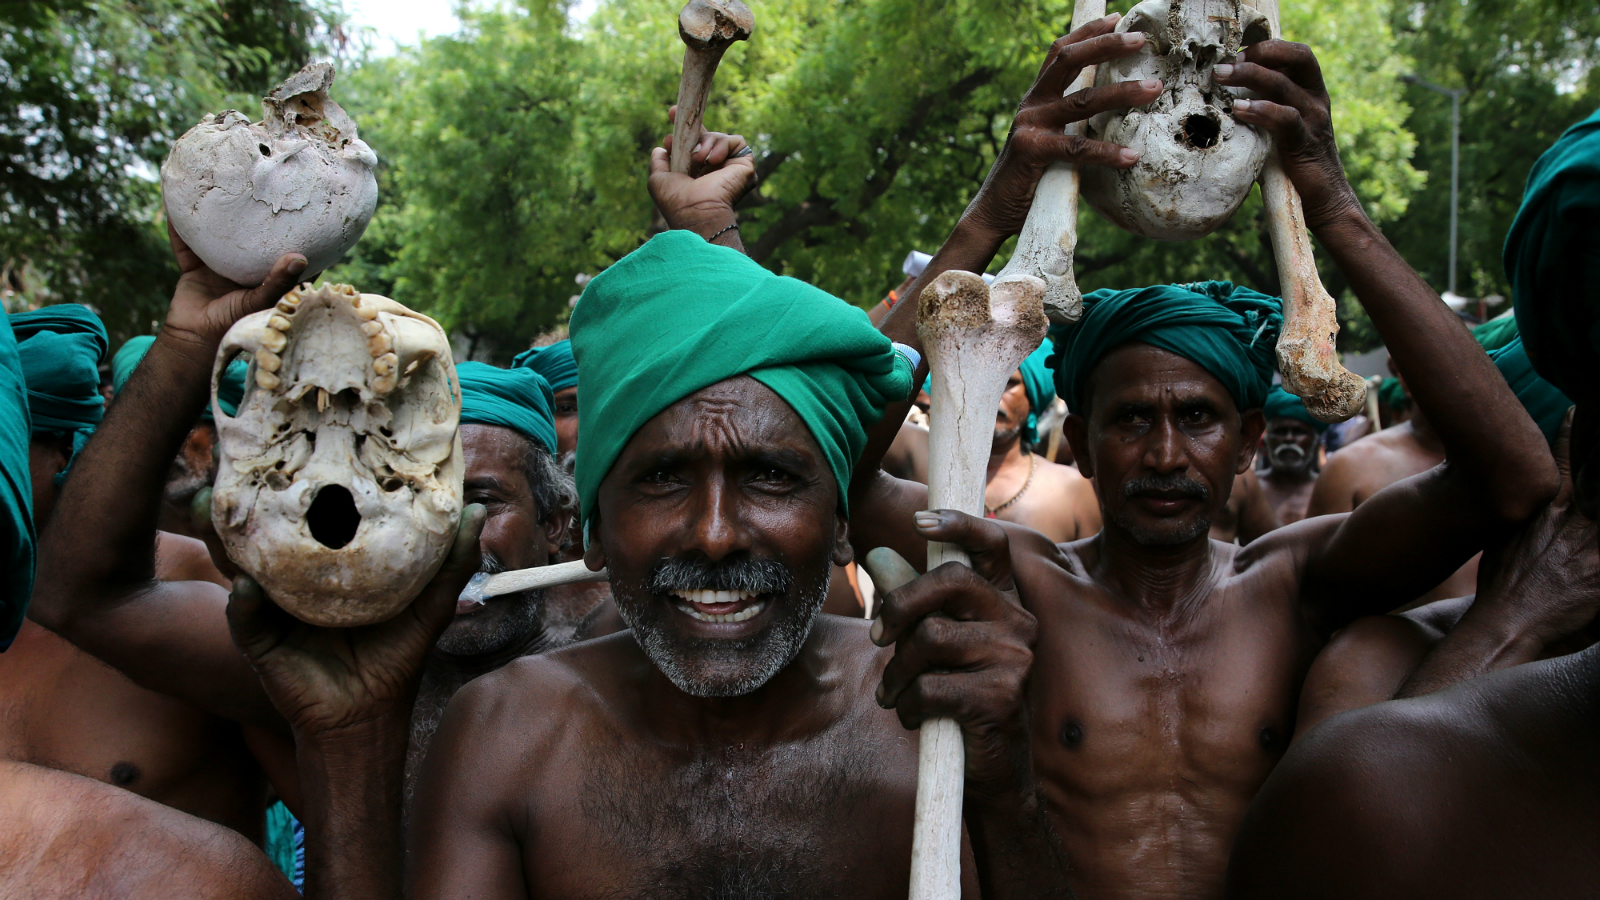 Indian farmers from South Indian Rivers Interlinking Farmers Association hold skulls claiming they belong to farmers who died in the past in Tamil Nadu, during a protest in New Delhi, India, 18 July 2017. Around 50 farmers have resumed their protest as they are demanding the formation of Cauvery river management committee and networking for all rivers by smart waterways project and are demanding better rate for their crops.